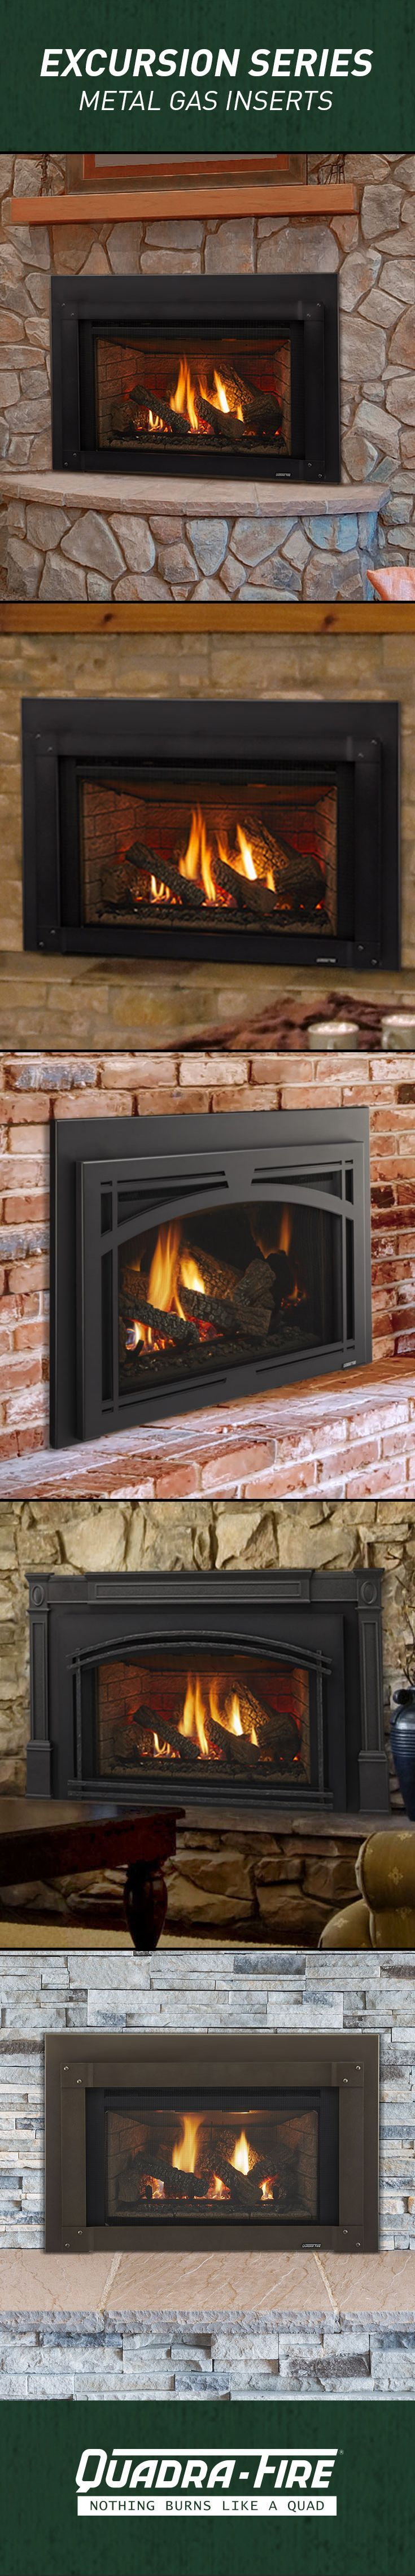 Quadra Fire Gas Fireplace Inserts Turn Your Drafty Inefficient Wood Fireplace Into A Beautiful And Efficient Fireplace Hearth Brick Fireplace Fireplace Inserts